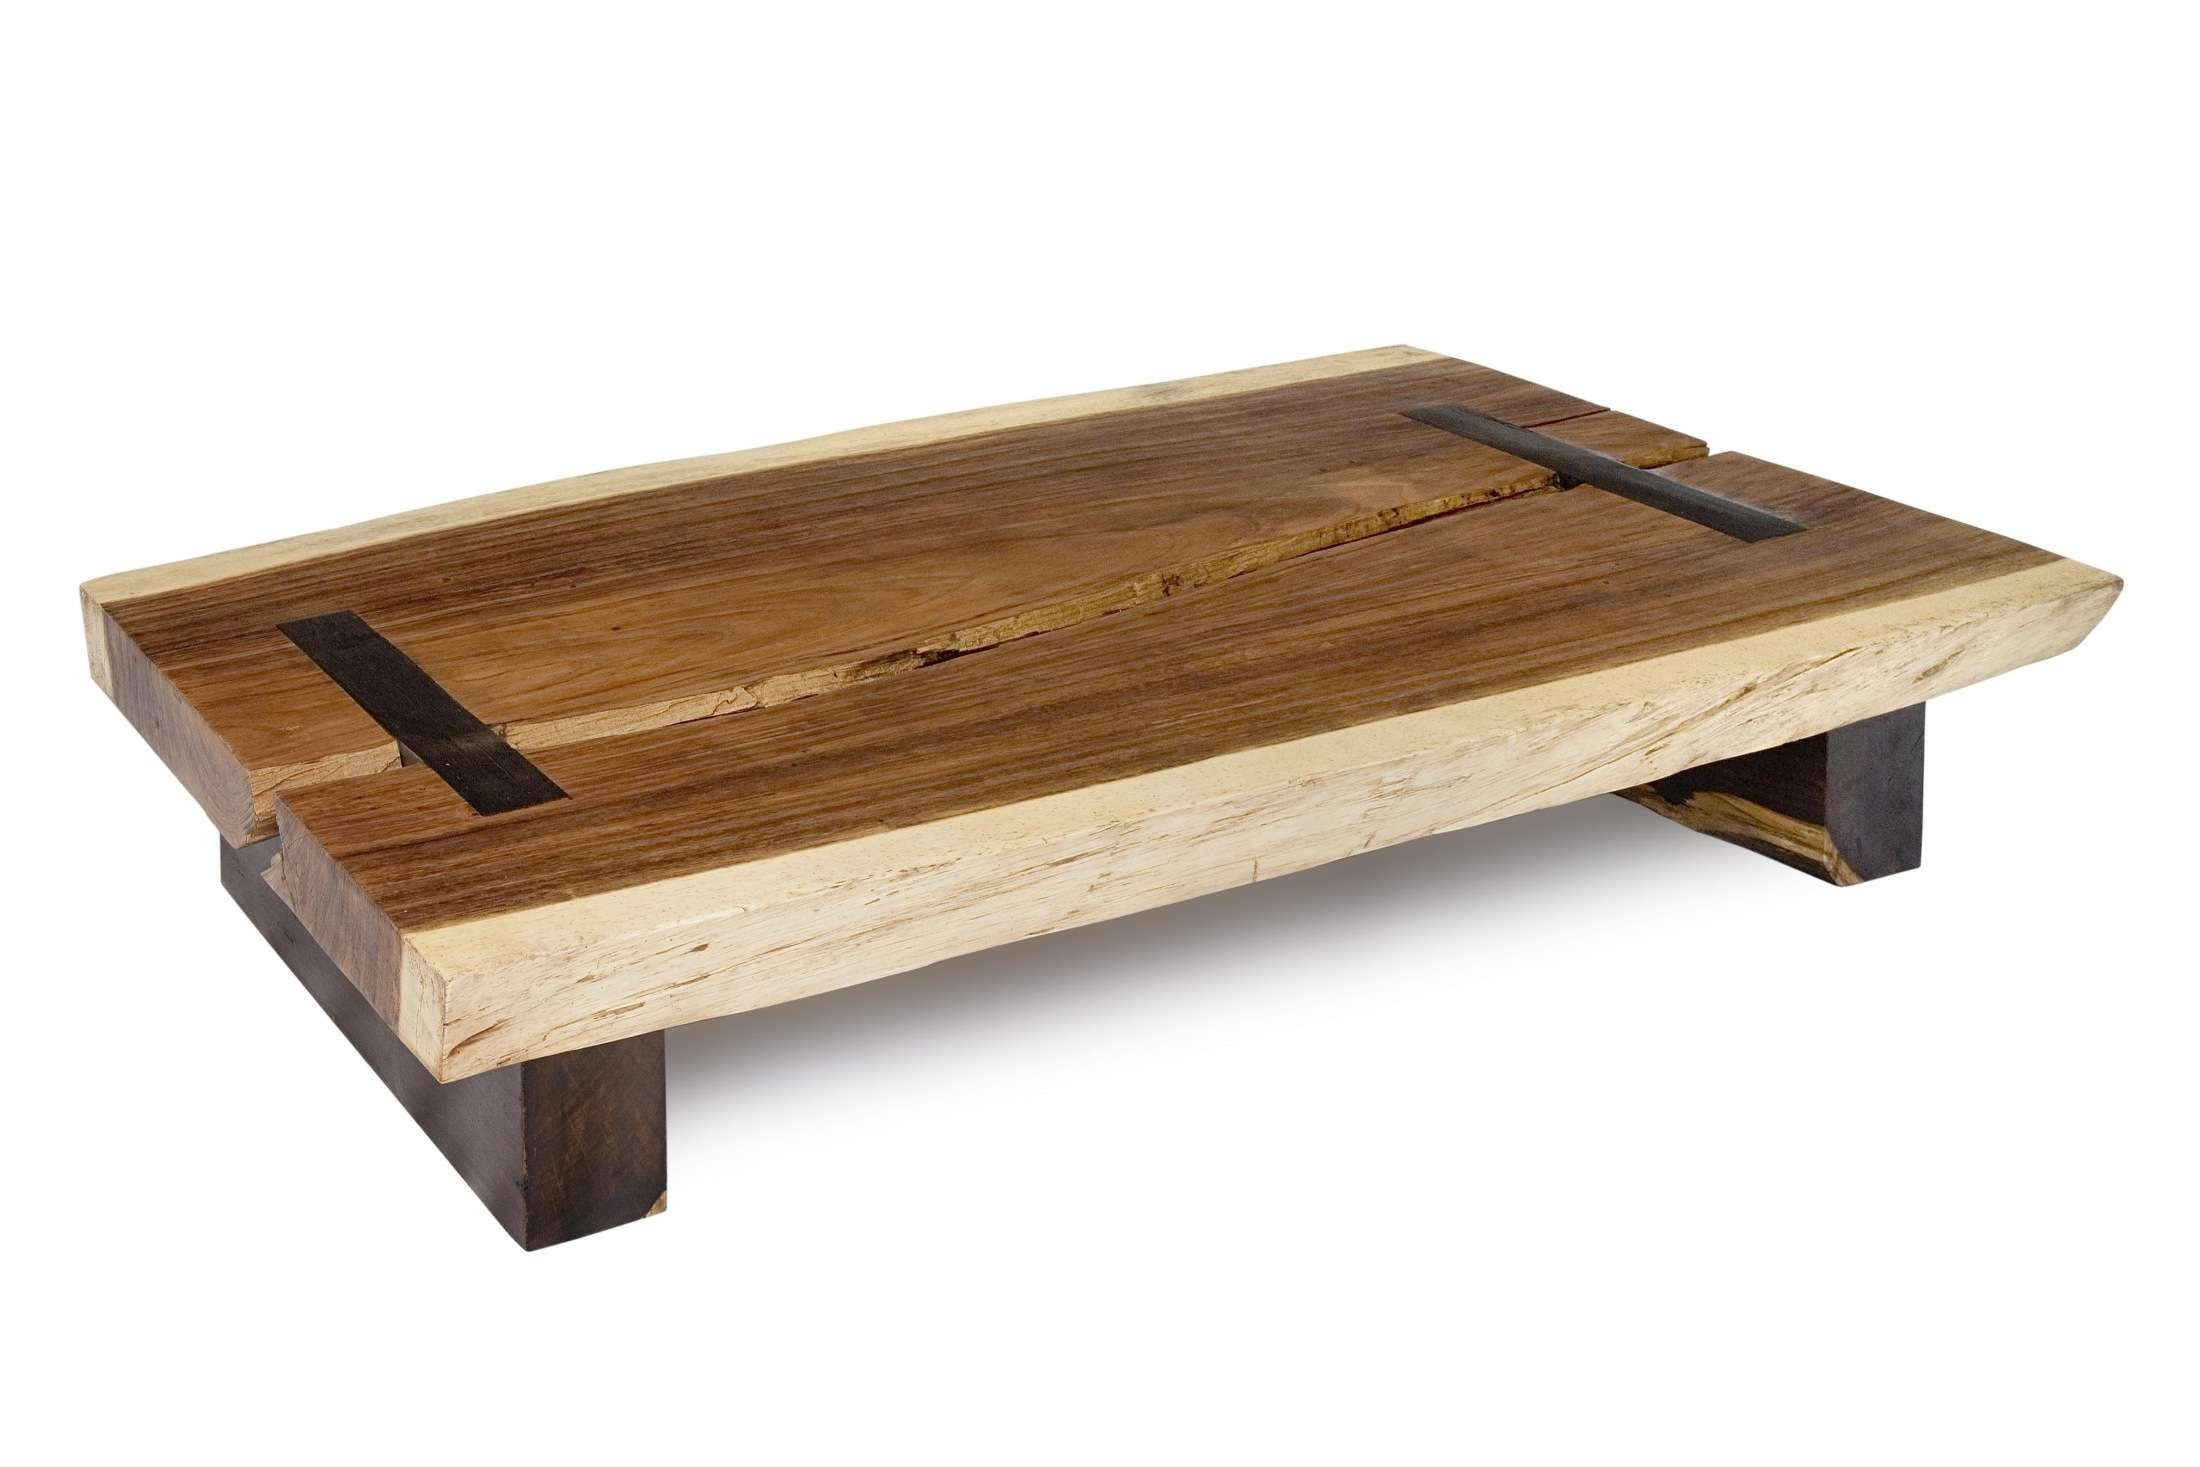 Coffee Tables : Wooden Coffee Table Legs Unusual Tables Acrylic In 2018 Unusual Wooden Coffee Tables (View 10 of 20)